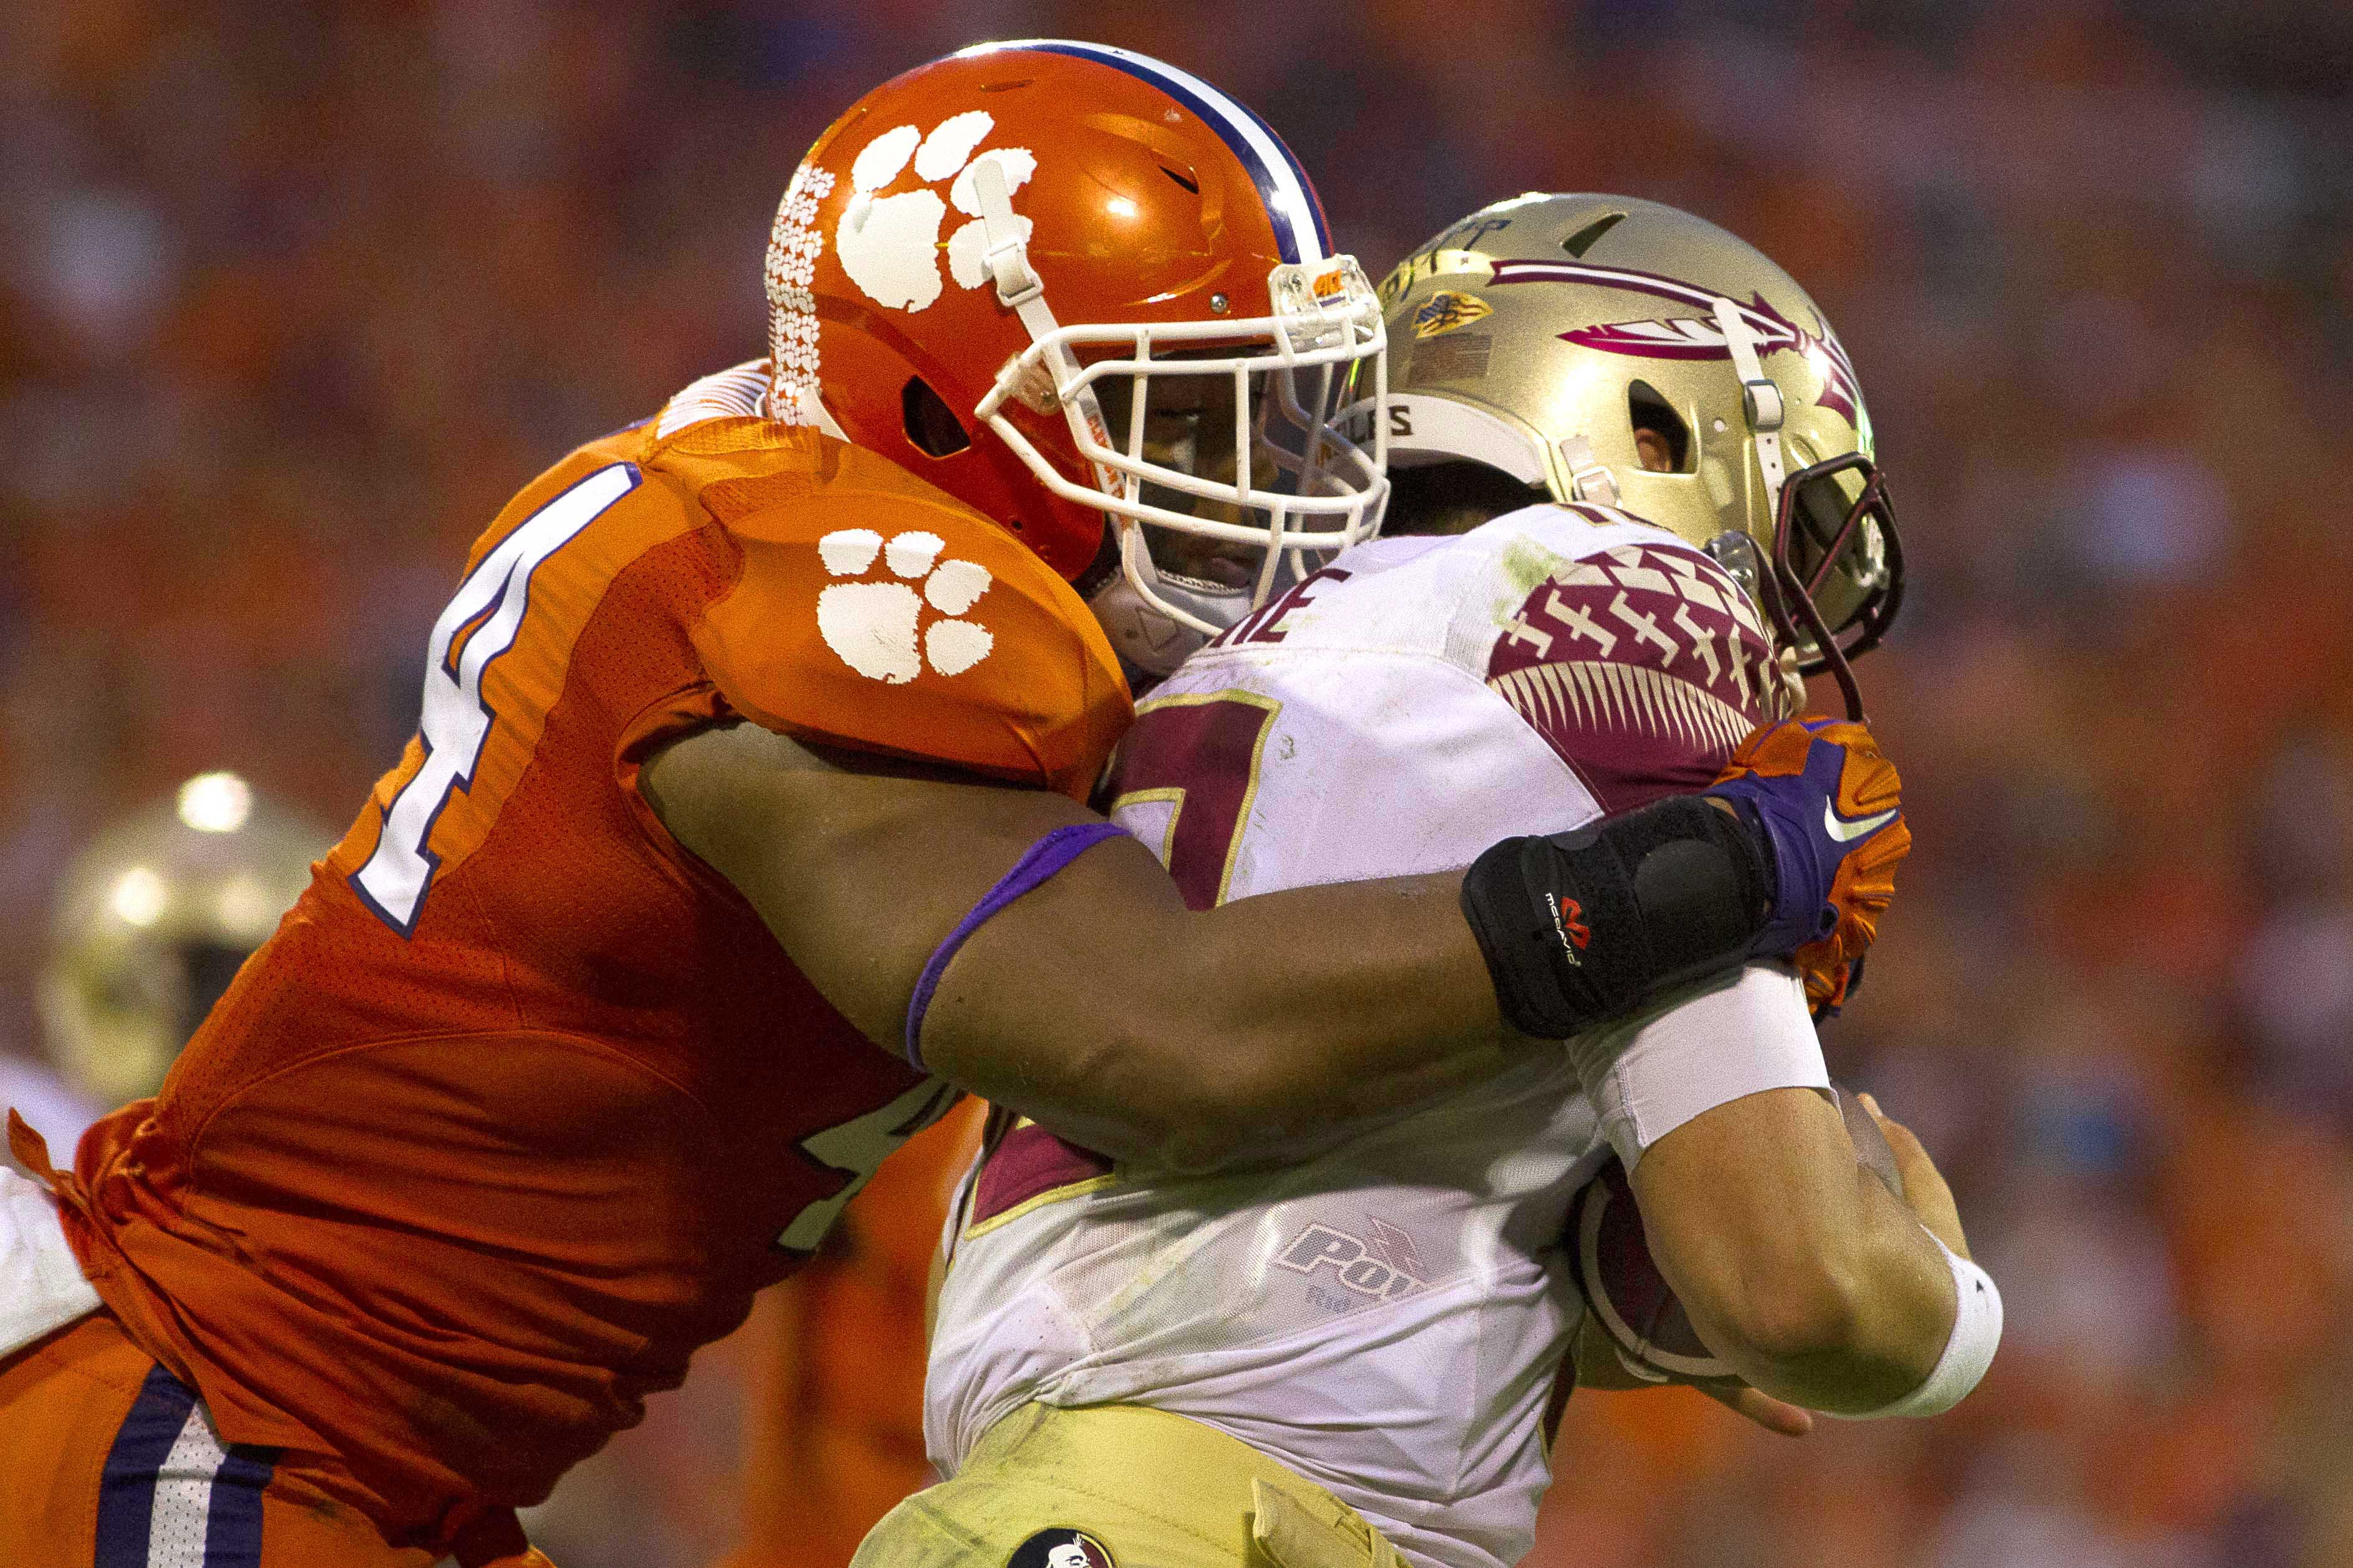 Clemson linebacker B.J. Goodson is the Giants' fourth-round selection